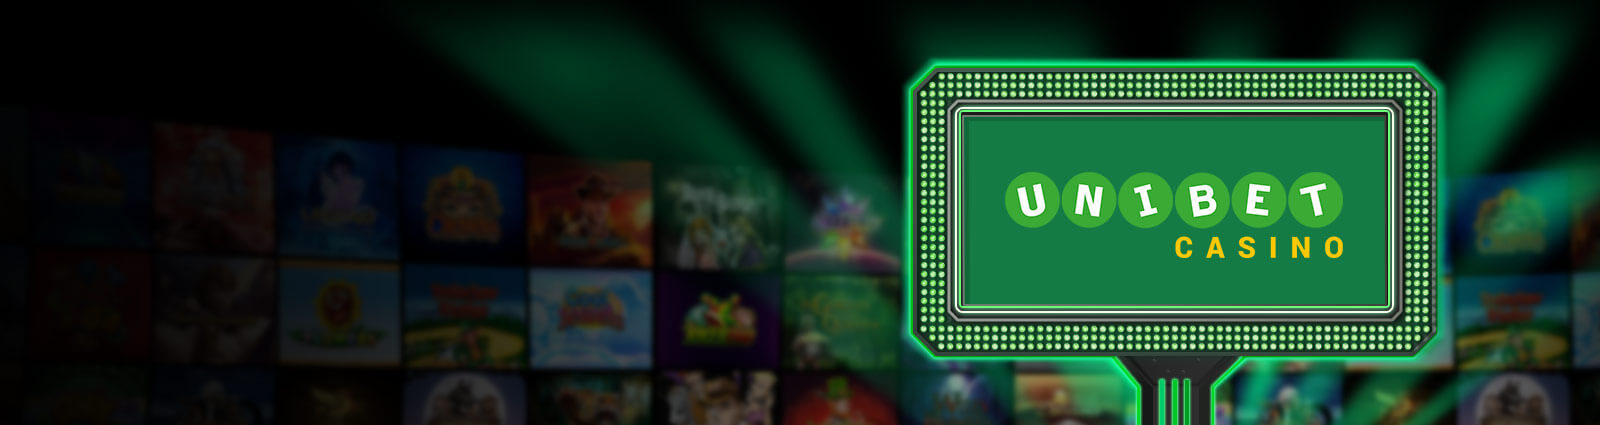 sp-board-casino-unibet-2017